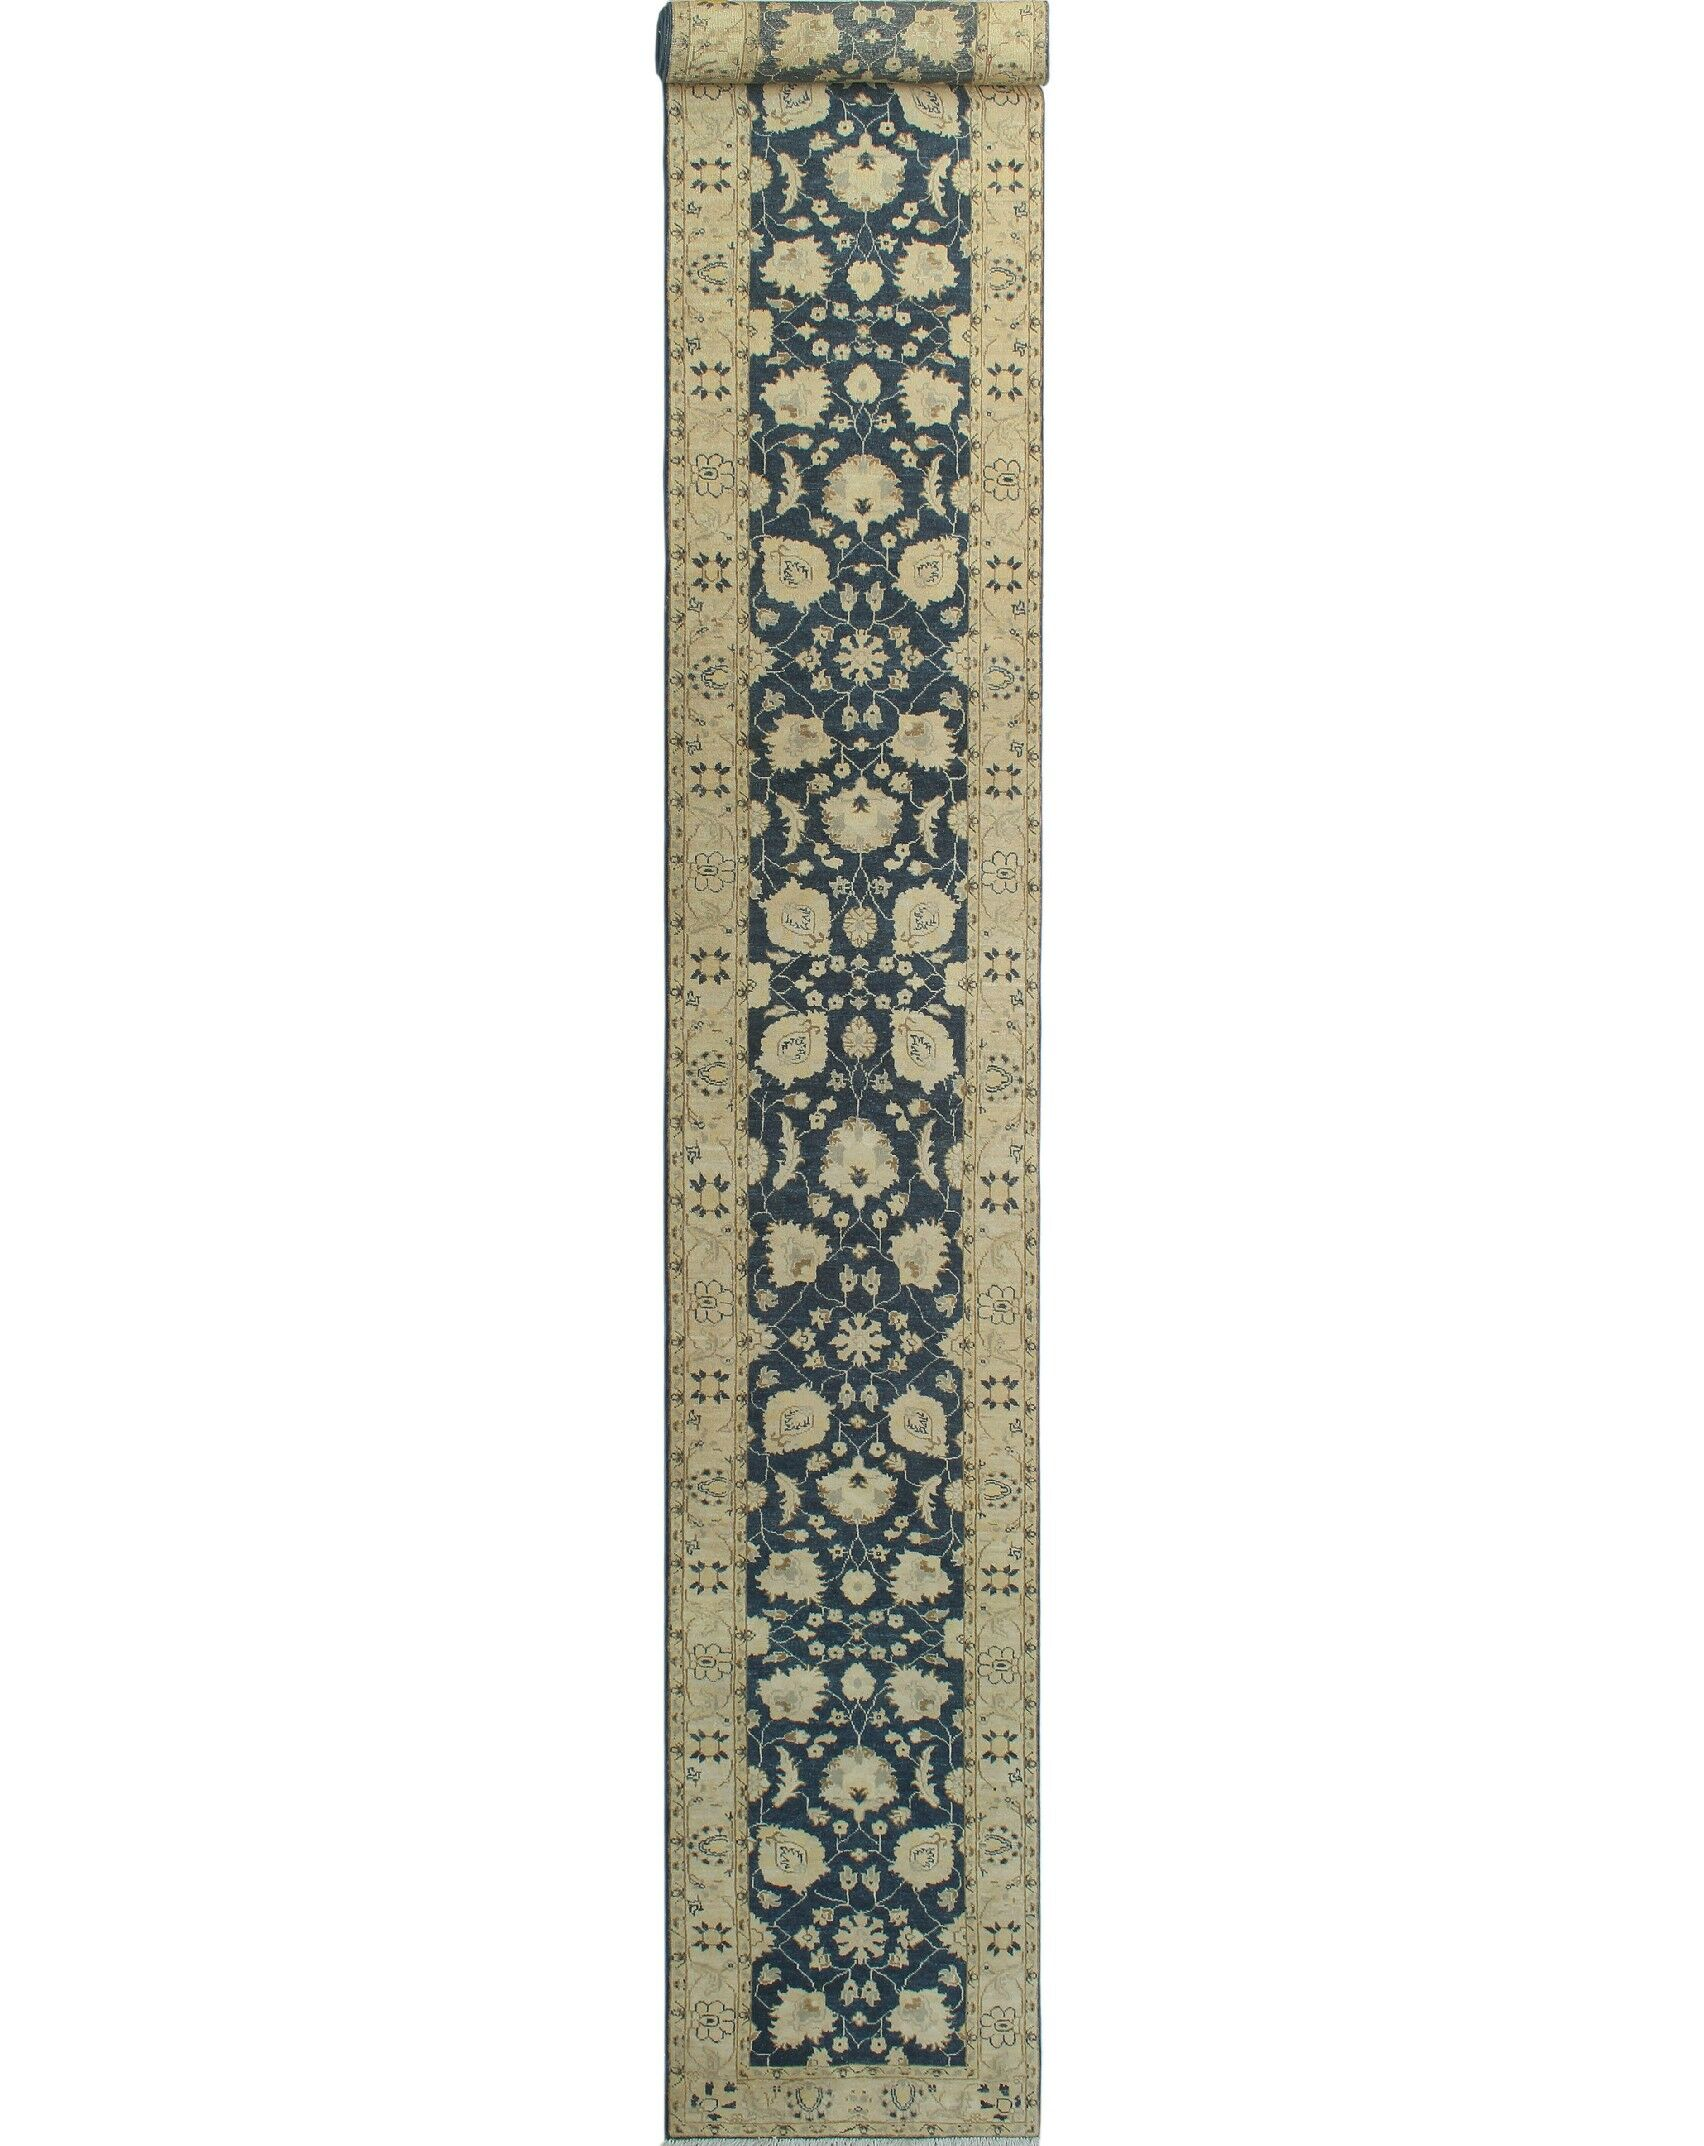 Peachey Hand-Knotted Wool Beige/Blue Area Rug